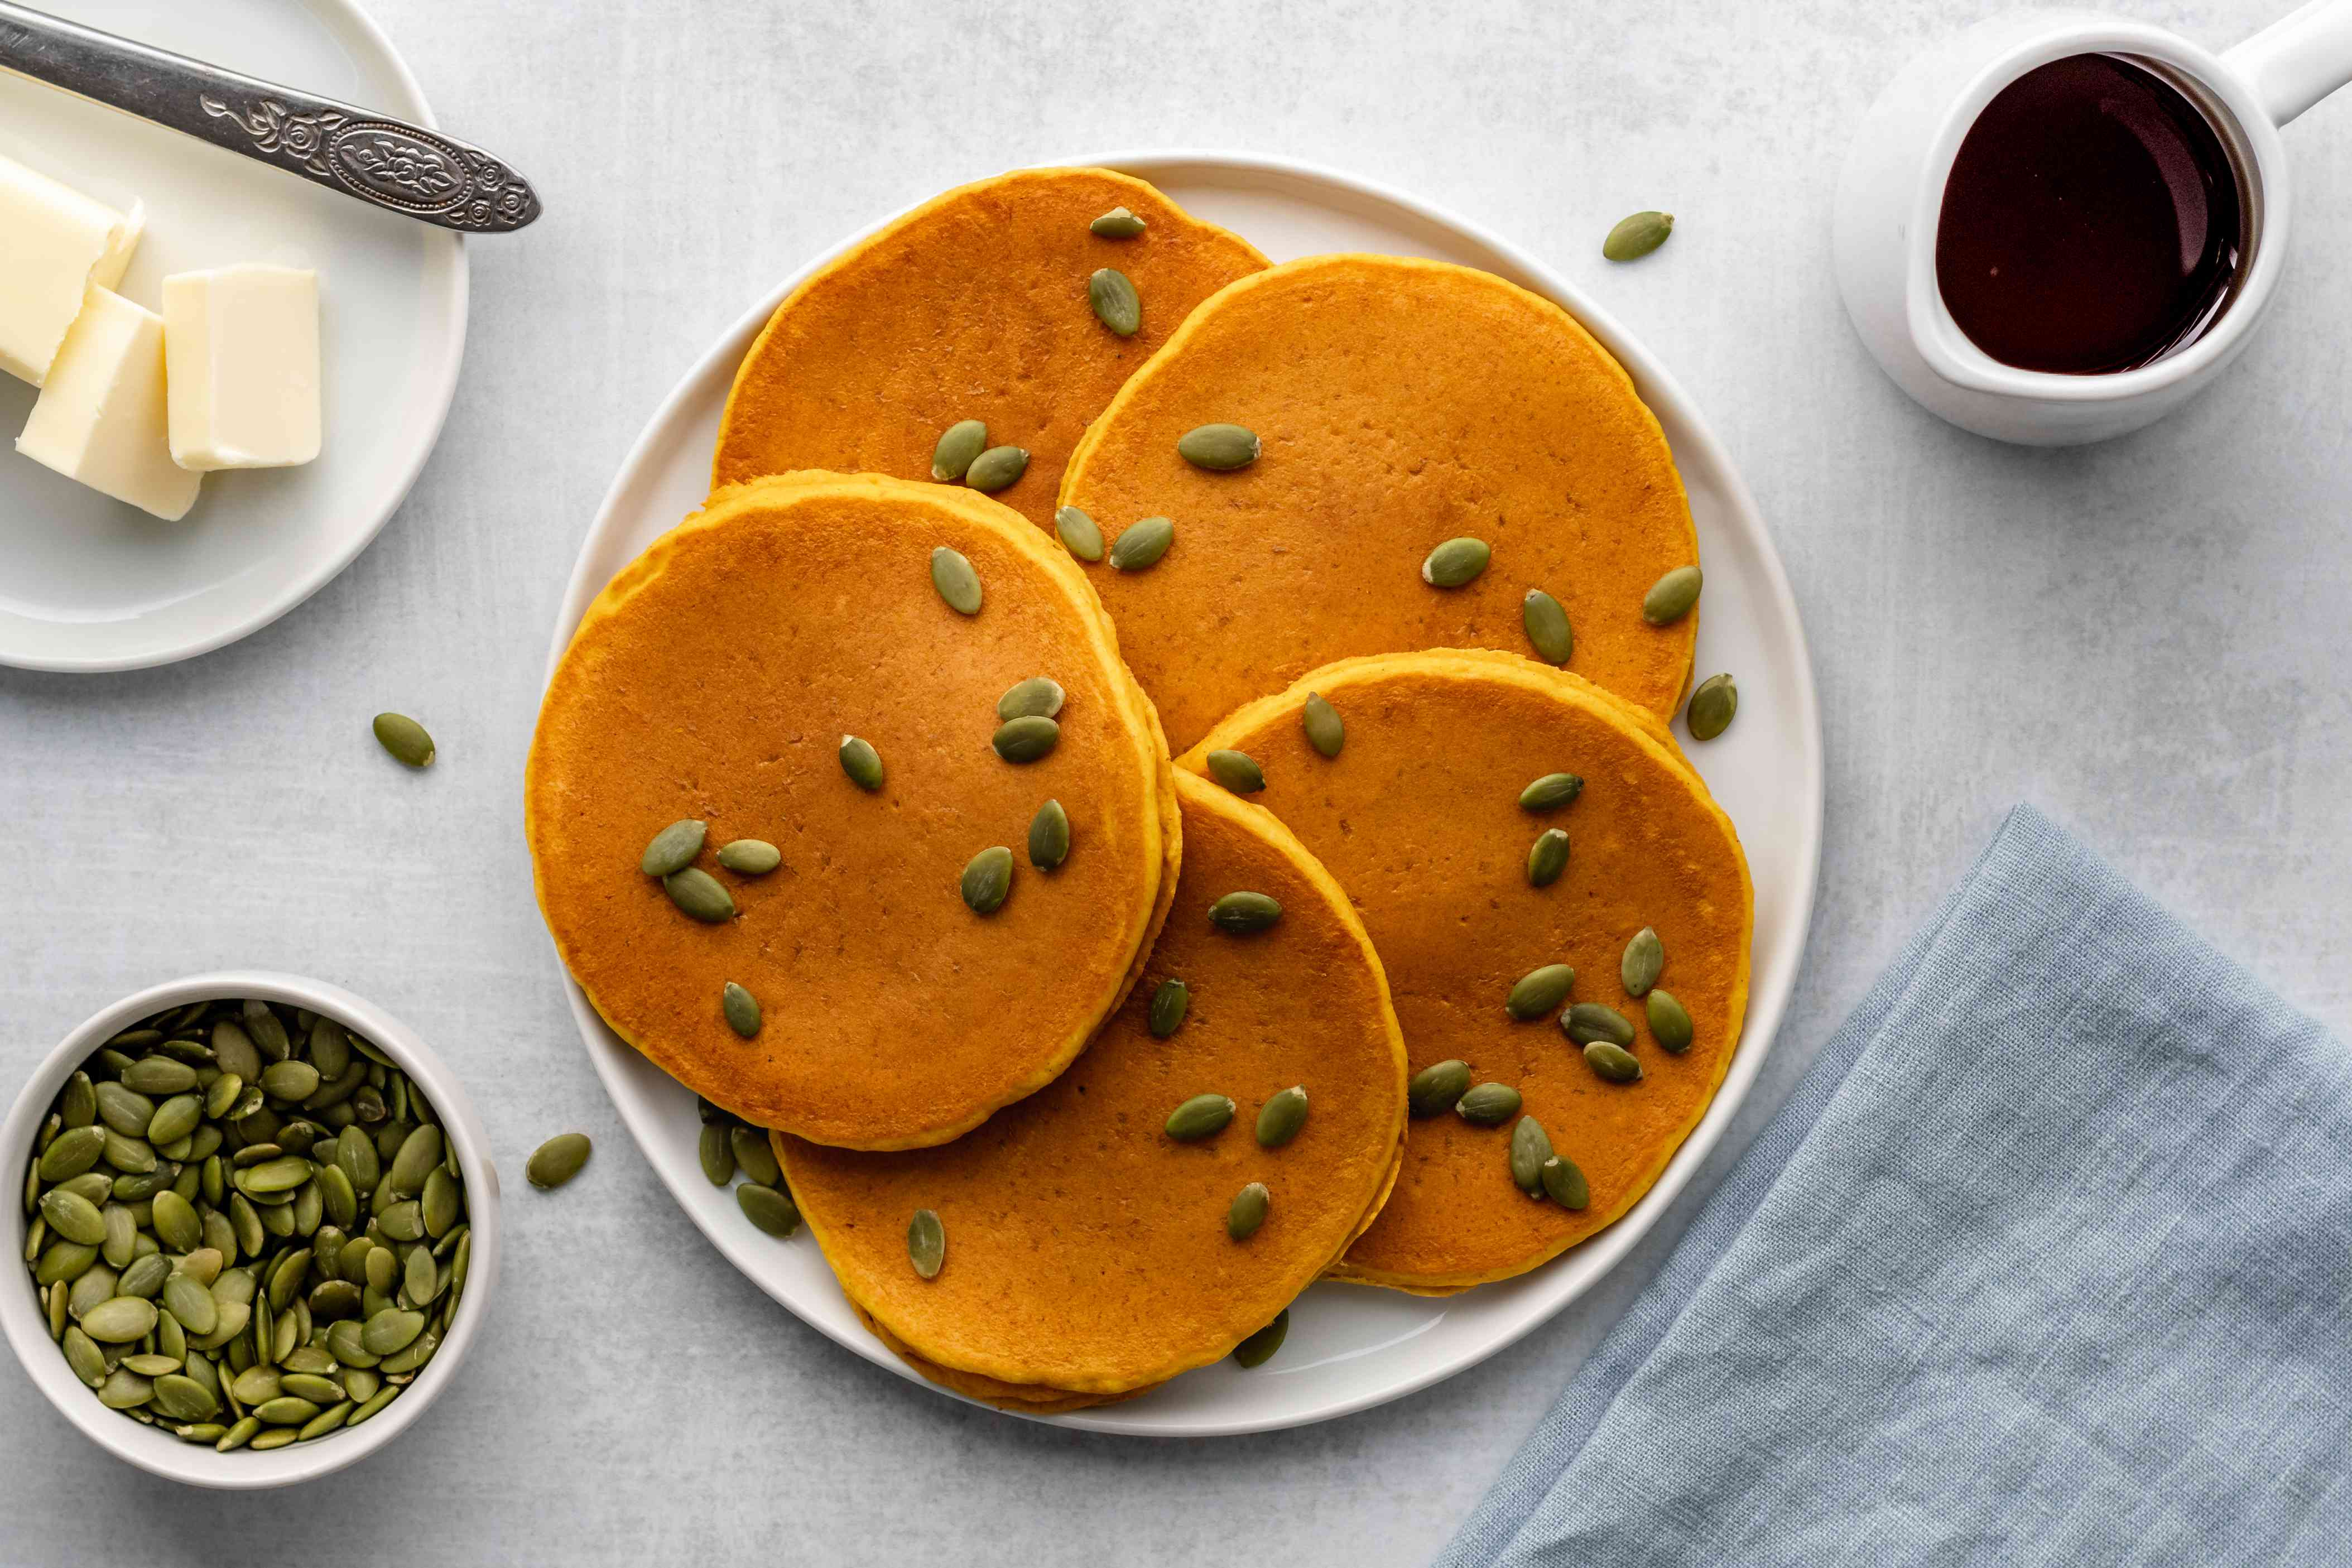 Quick and easy pumpkin pancakes on a plate, garnished with pumpkin seeds